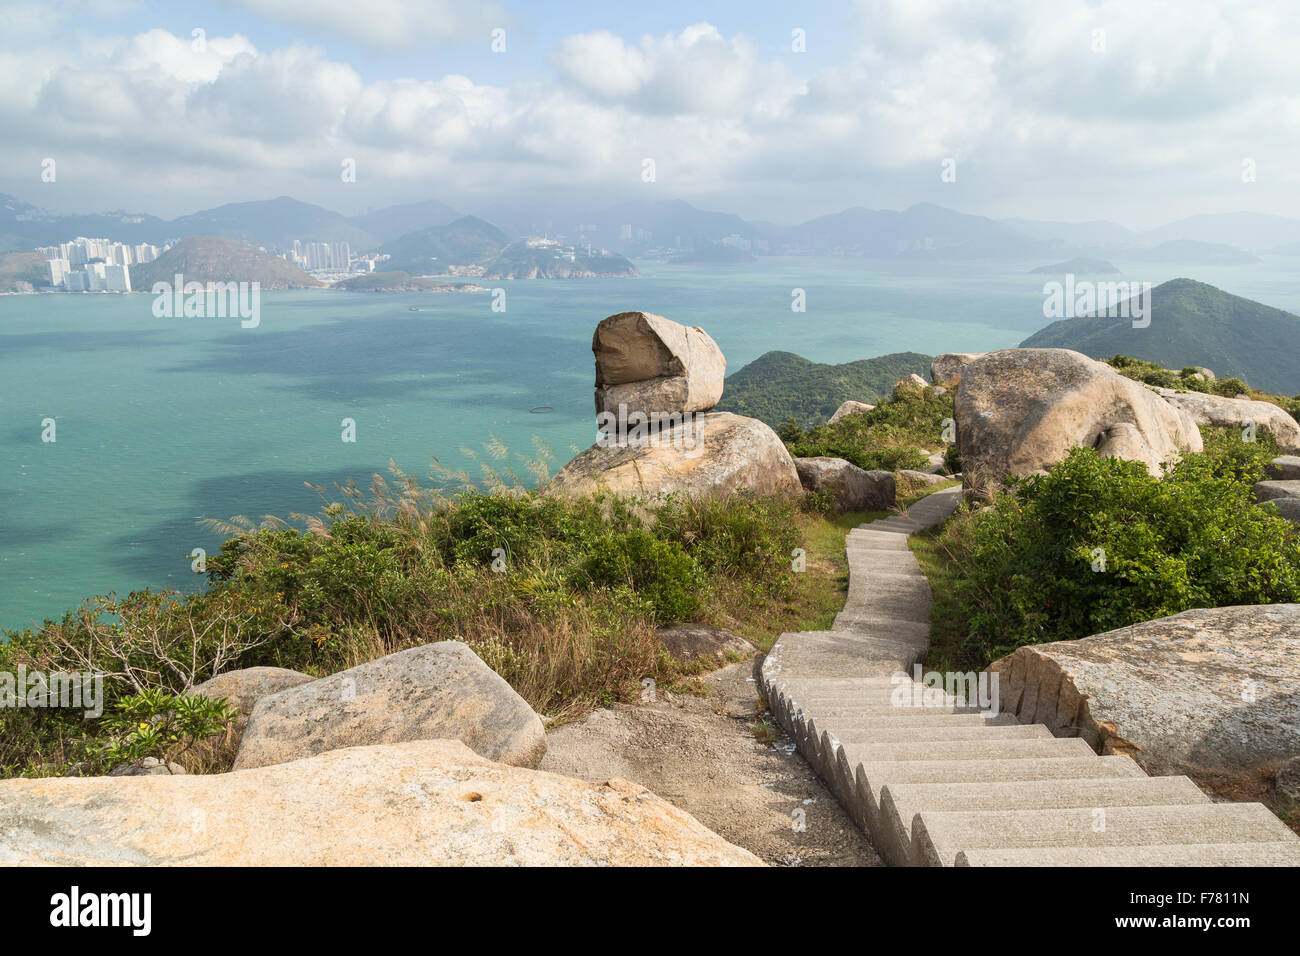 Scenic View Of Rocky Landscape, Stairs, Ocean And Hong Kong Island From The  Ling Kok Shan Hill At The Lamma Island In Hong Kong.